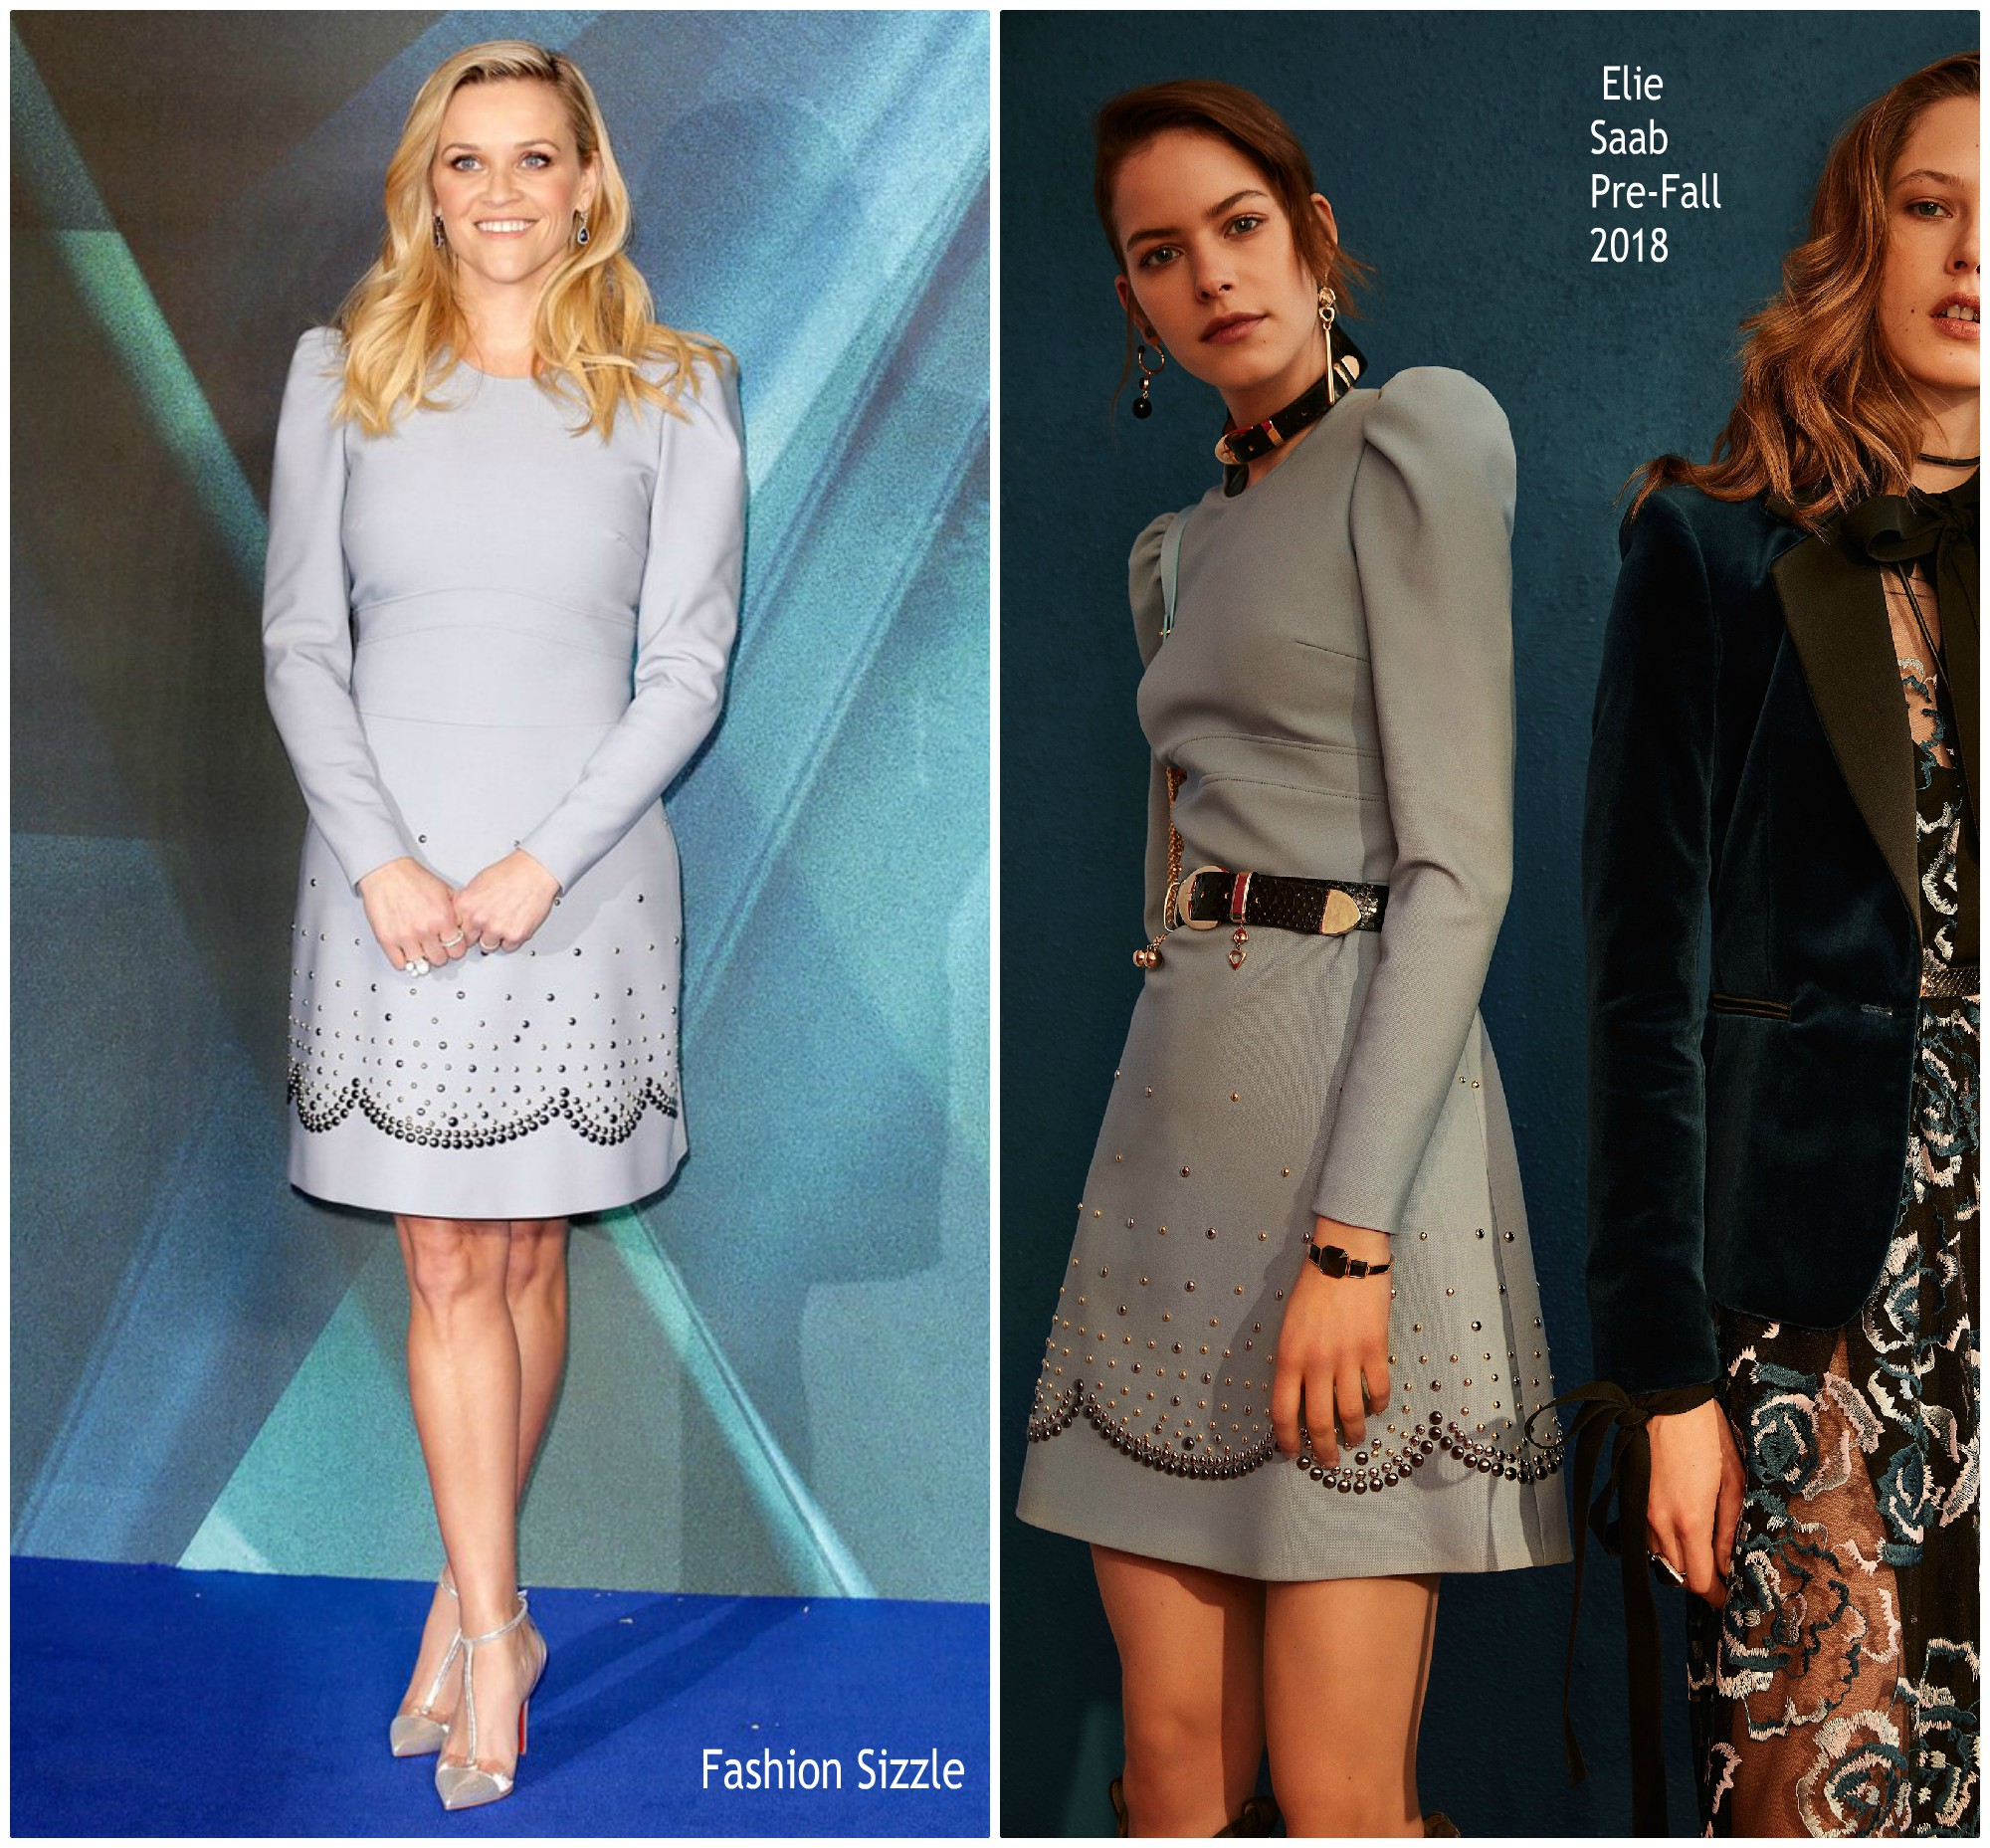 reese-witherspoon-in-elie-saab-a-wrinkle-in-time-london-premiere